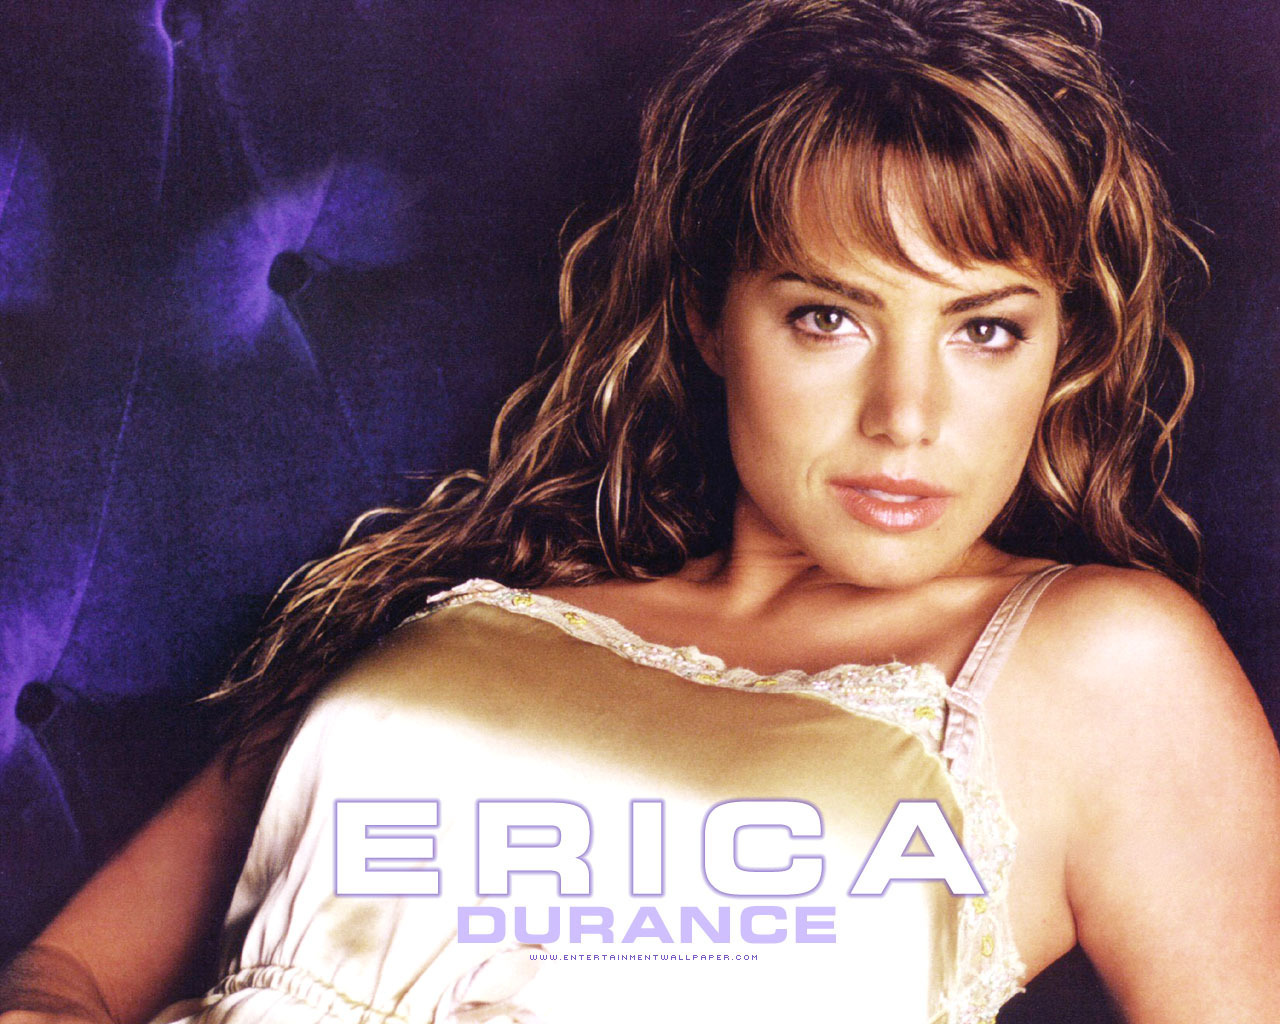 erica durance images wallpaper - photo #31